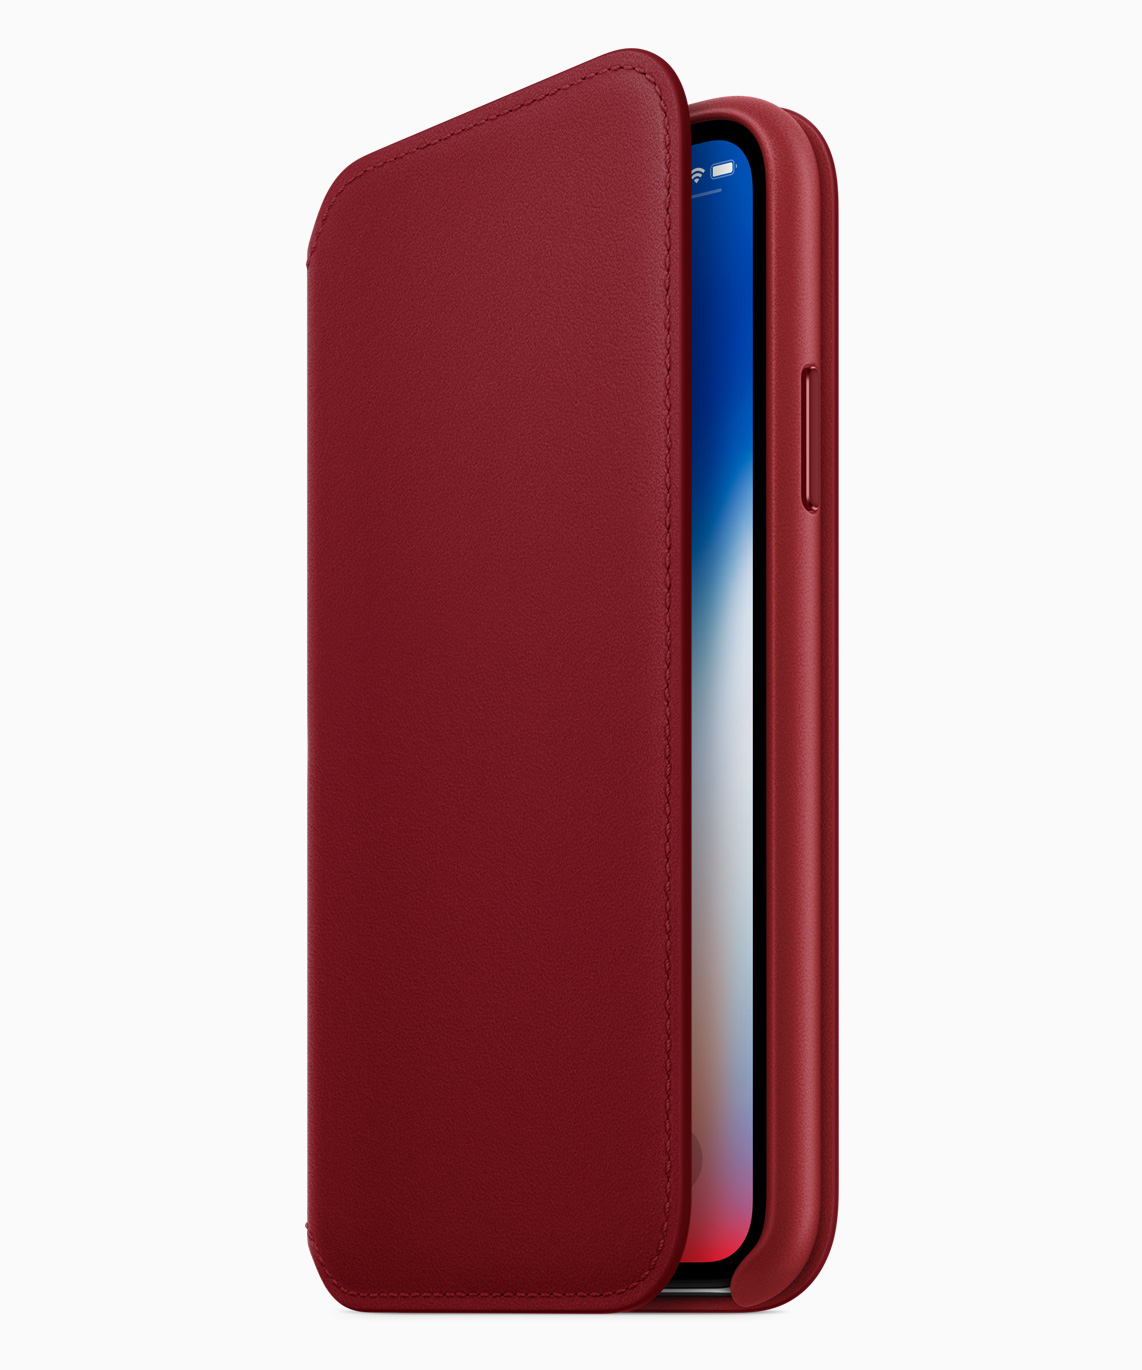 czerwony iphone 8 iphone 8 plus product red 1